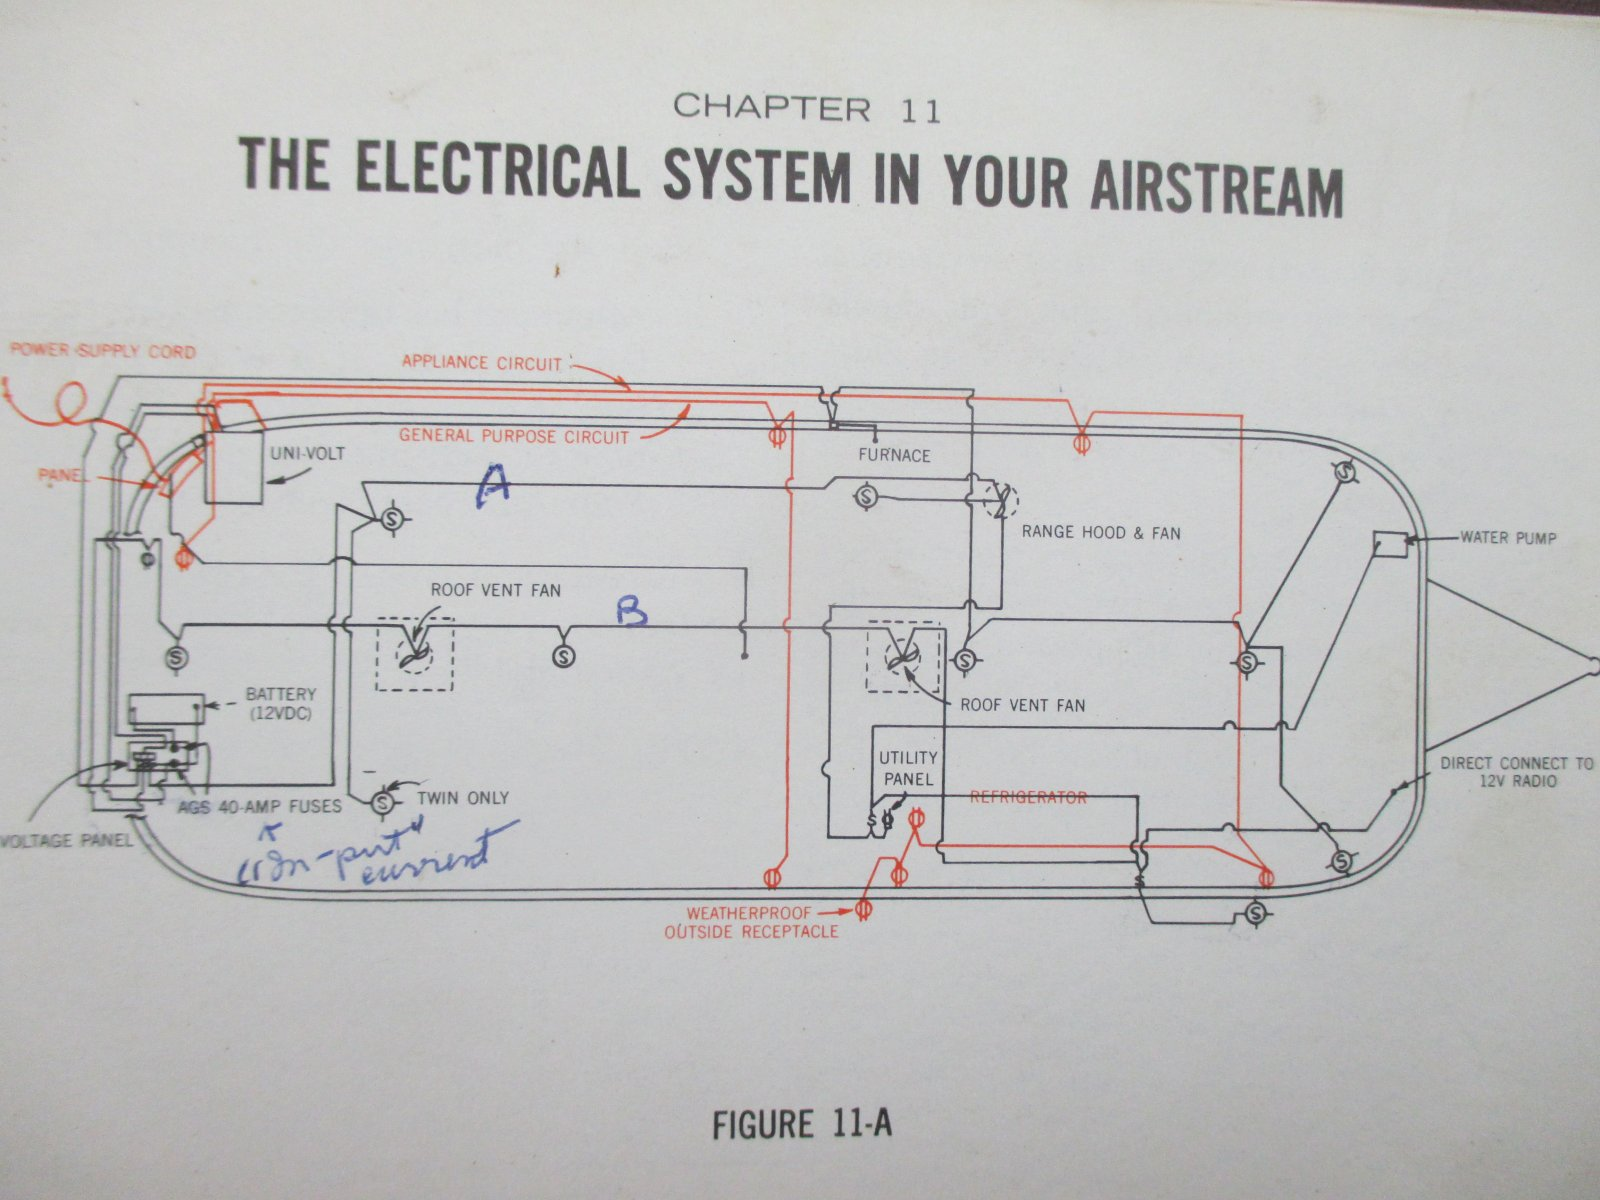 1968 Vw Beetle Wiring Diagram together with Men of reddit what places would you never also Best Diesel Engine Dt 466 Medium Duty moreover Glaval Bus Wiring Diagram besides School Bus Wabco Abs Light Staying On. on thomas built wiring diagrams